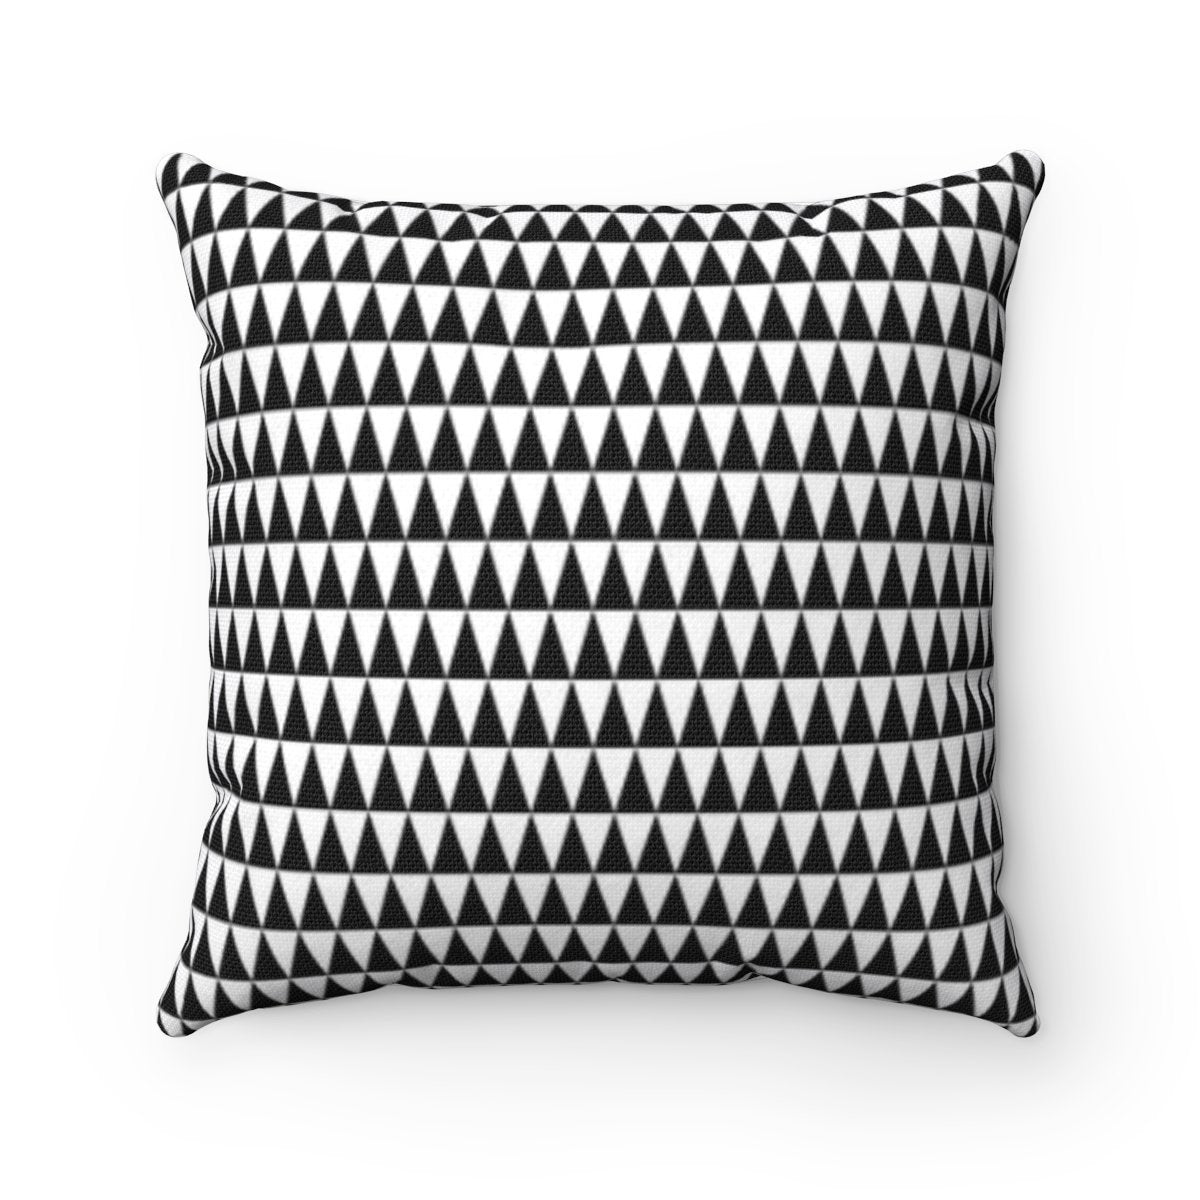 2 in 1 Black and Stripes and chevron decorative cushion cover-Home Decor - Decorative Accents - Pillows & Throws - Decorative Pillows-Maison d'Elite-14x14-Très Elite